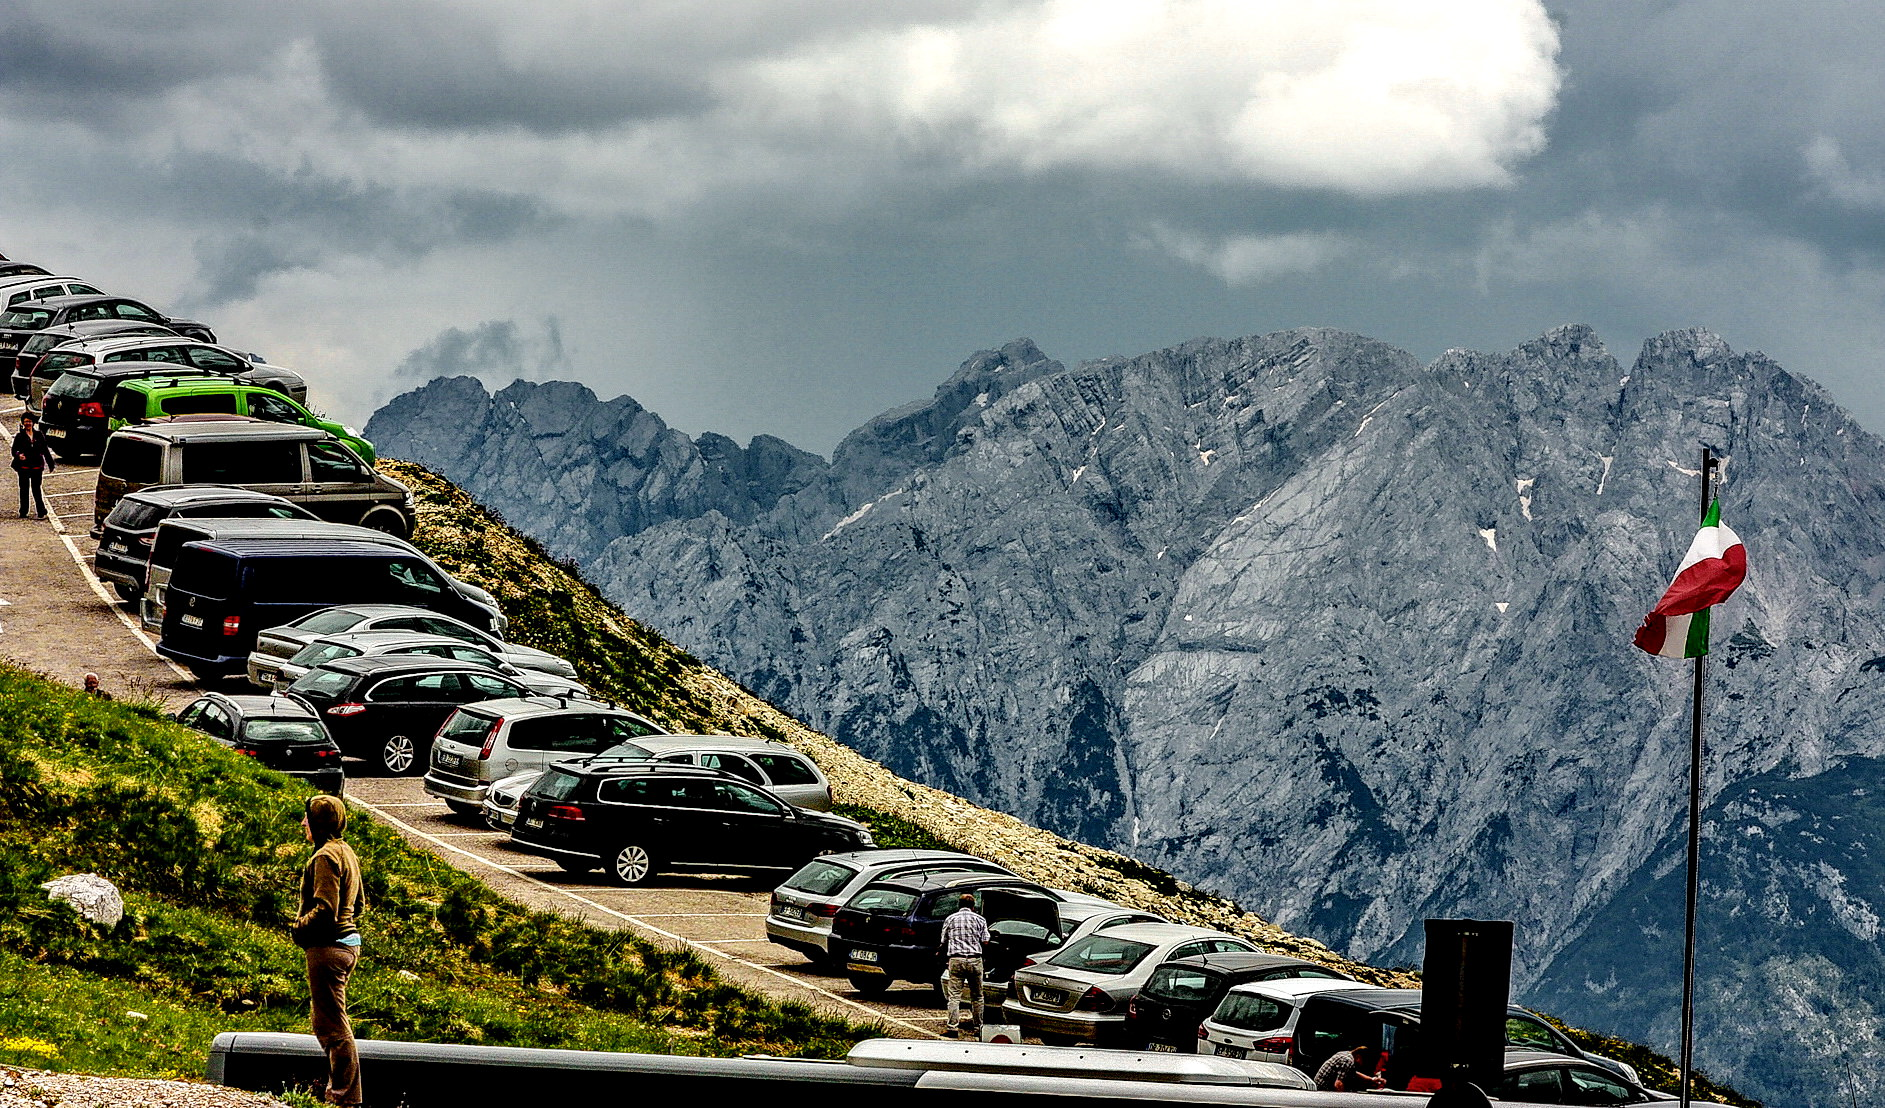 The Alps 2014-Italy-Dolomites 13